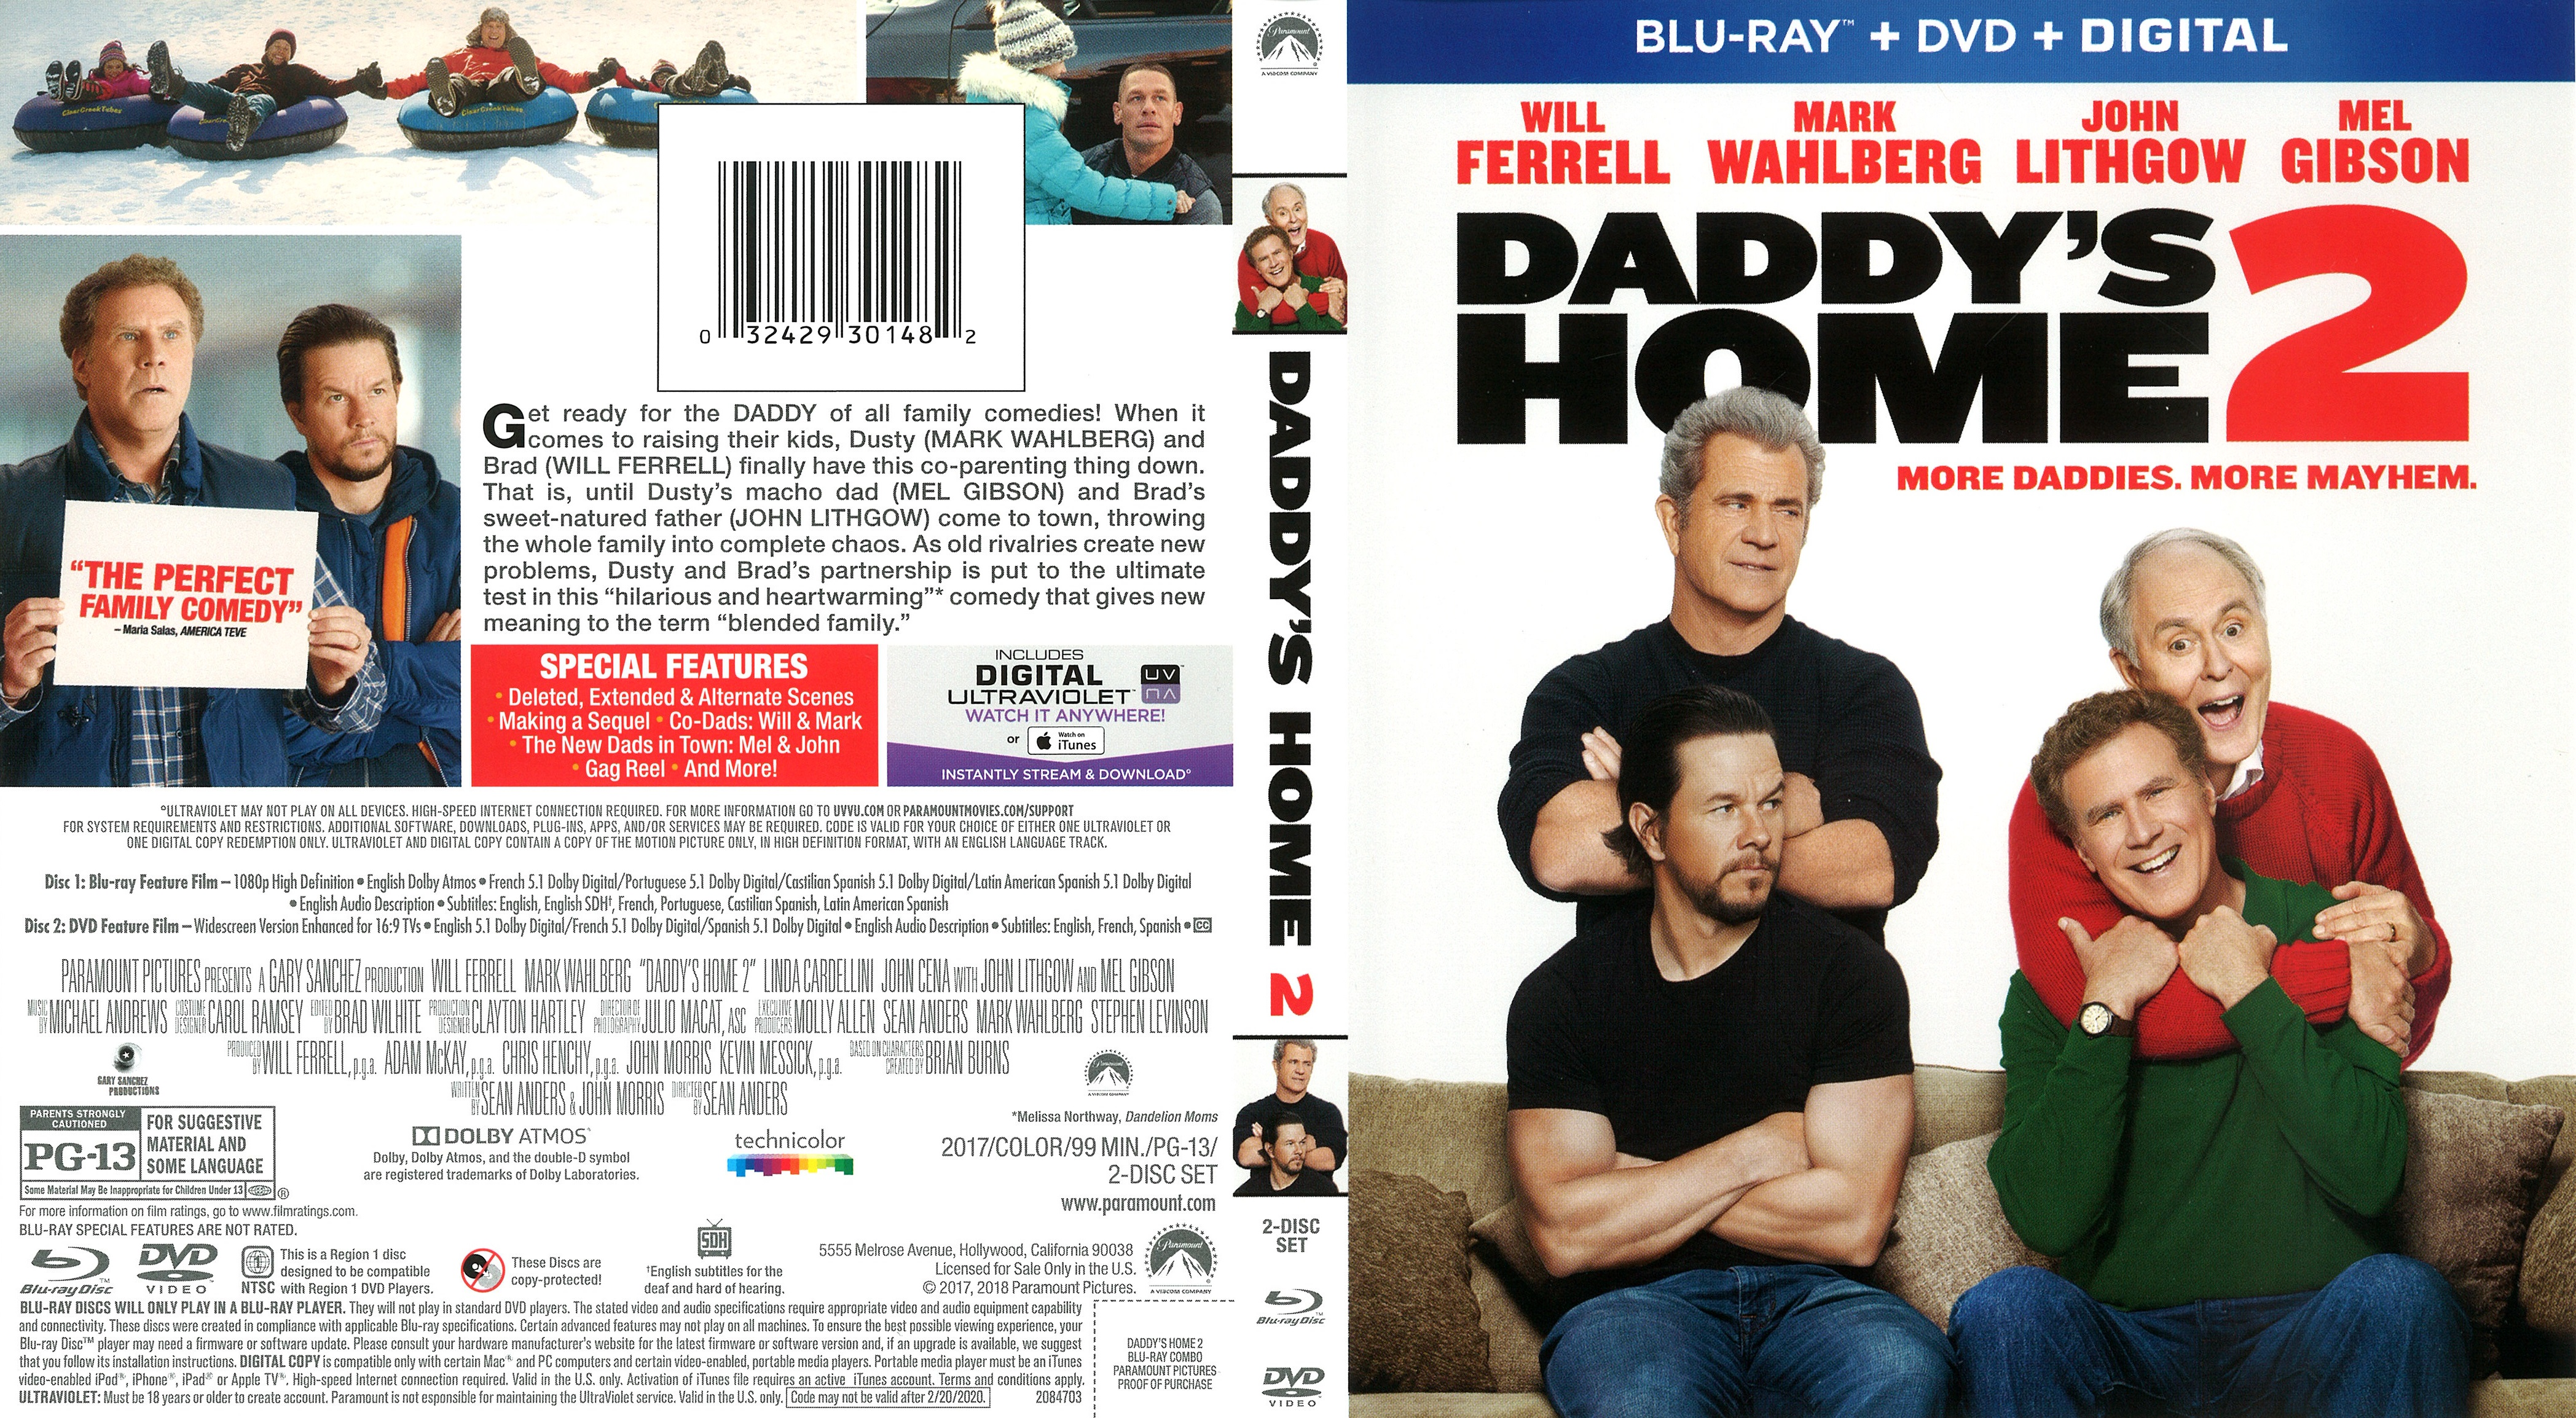 Daddys Home 2 2017 Front Blu Ray Covers Cover Century Over 500 000 Album Art Covers For Free